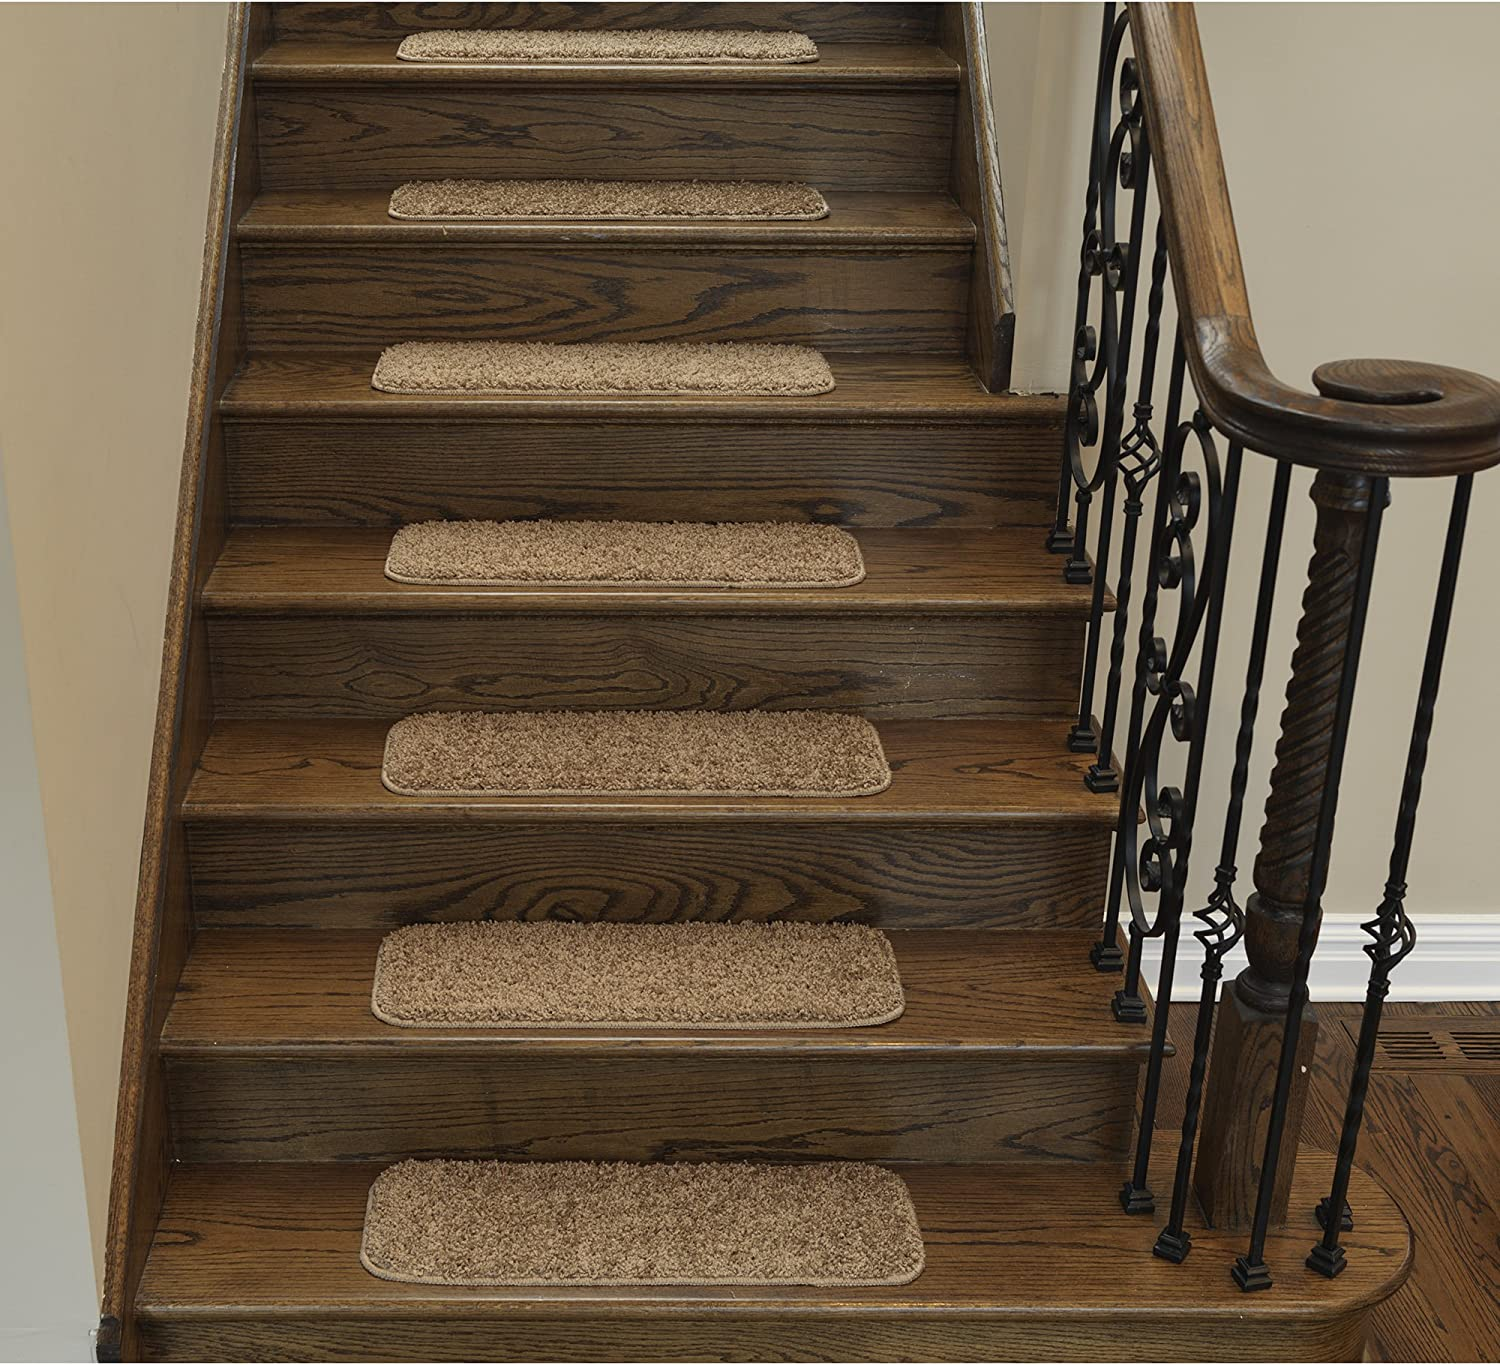 """Sweethome Stores Non-Slip Shag Carpet Stair Treads, (9""""X26"""")-5 Pack- Camel Solid"""